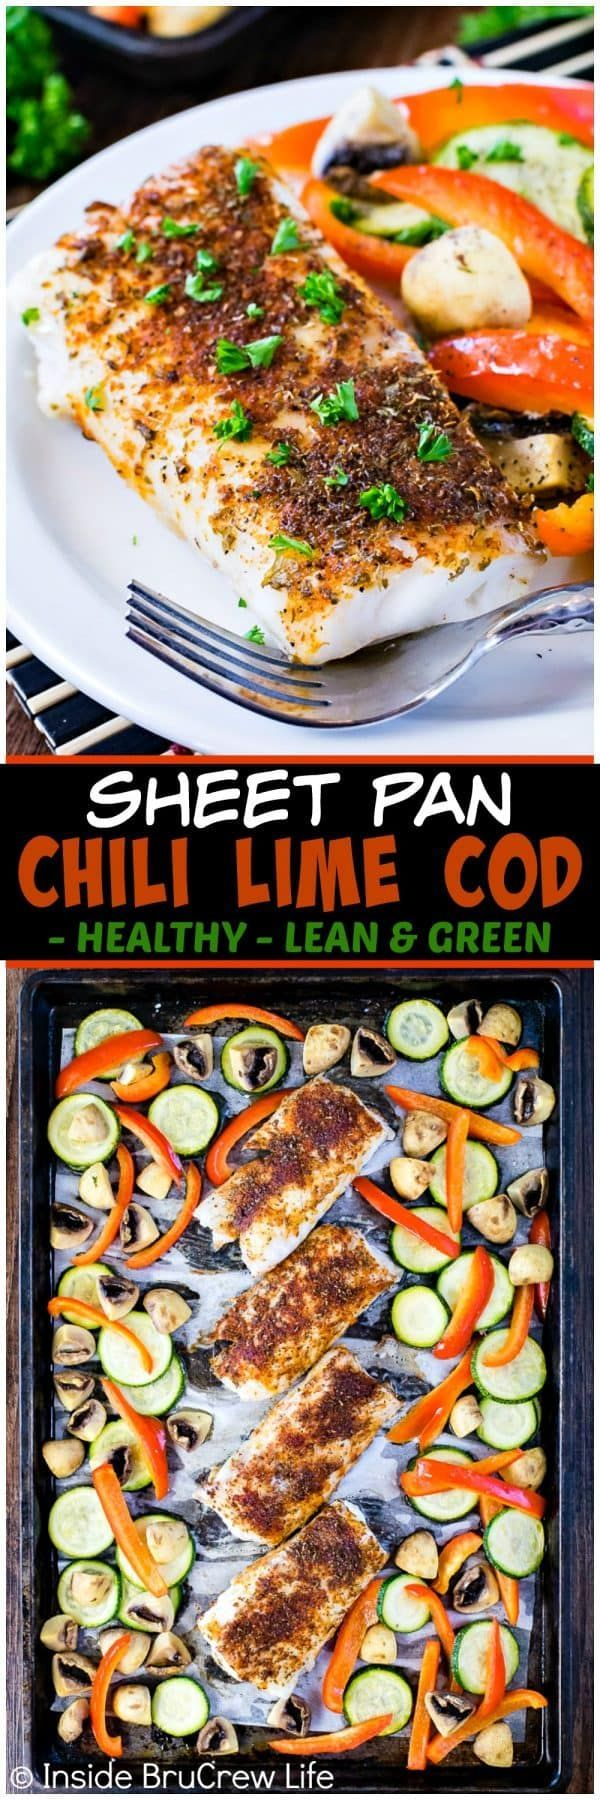 Sheet Pan Chili Lime Cod - roasted veggies and a chili rub adds a fun flavor to this easy and healthy fish dinner. Perfect lean and green recipe that can be on your table in under 30 minutes. #healthy #lean